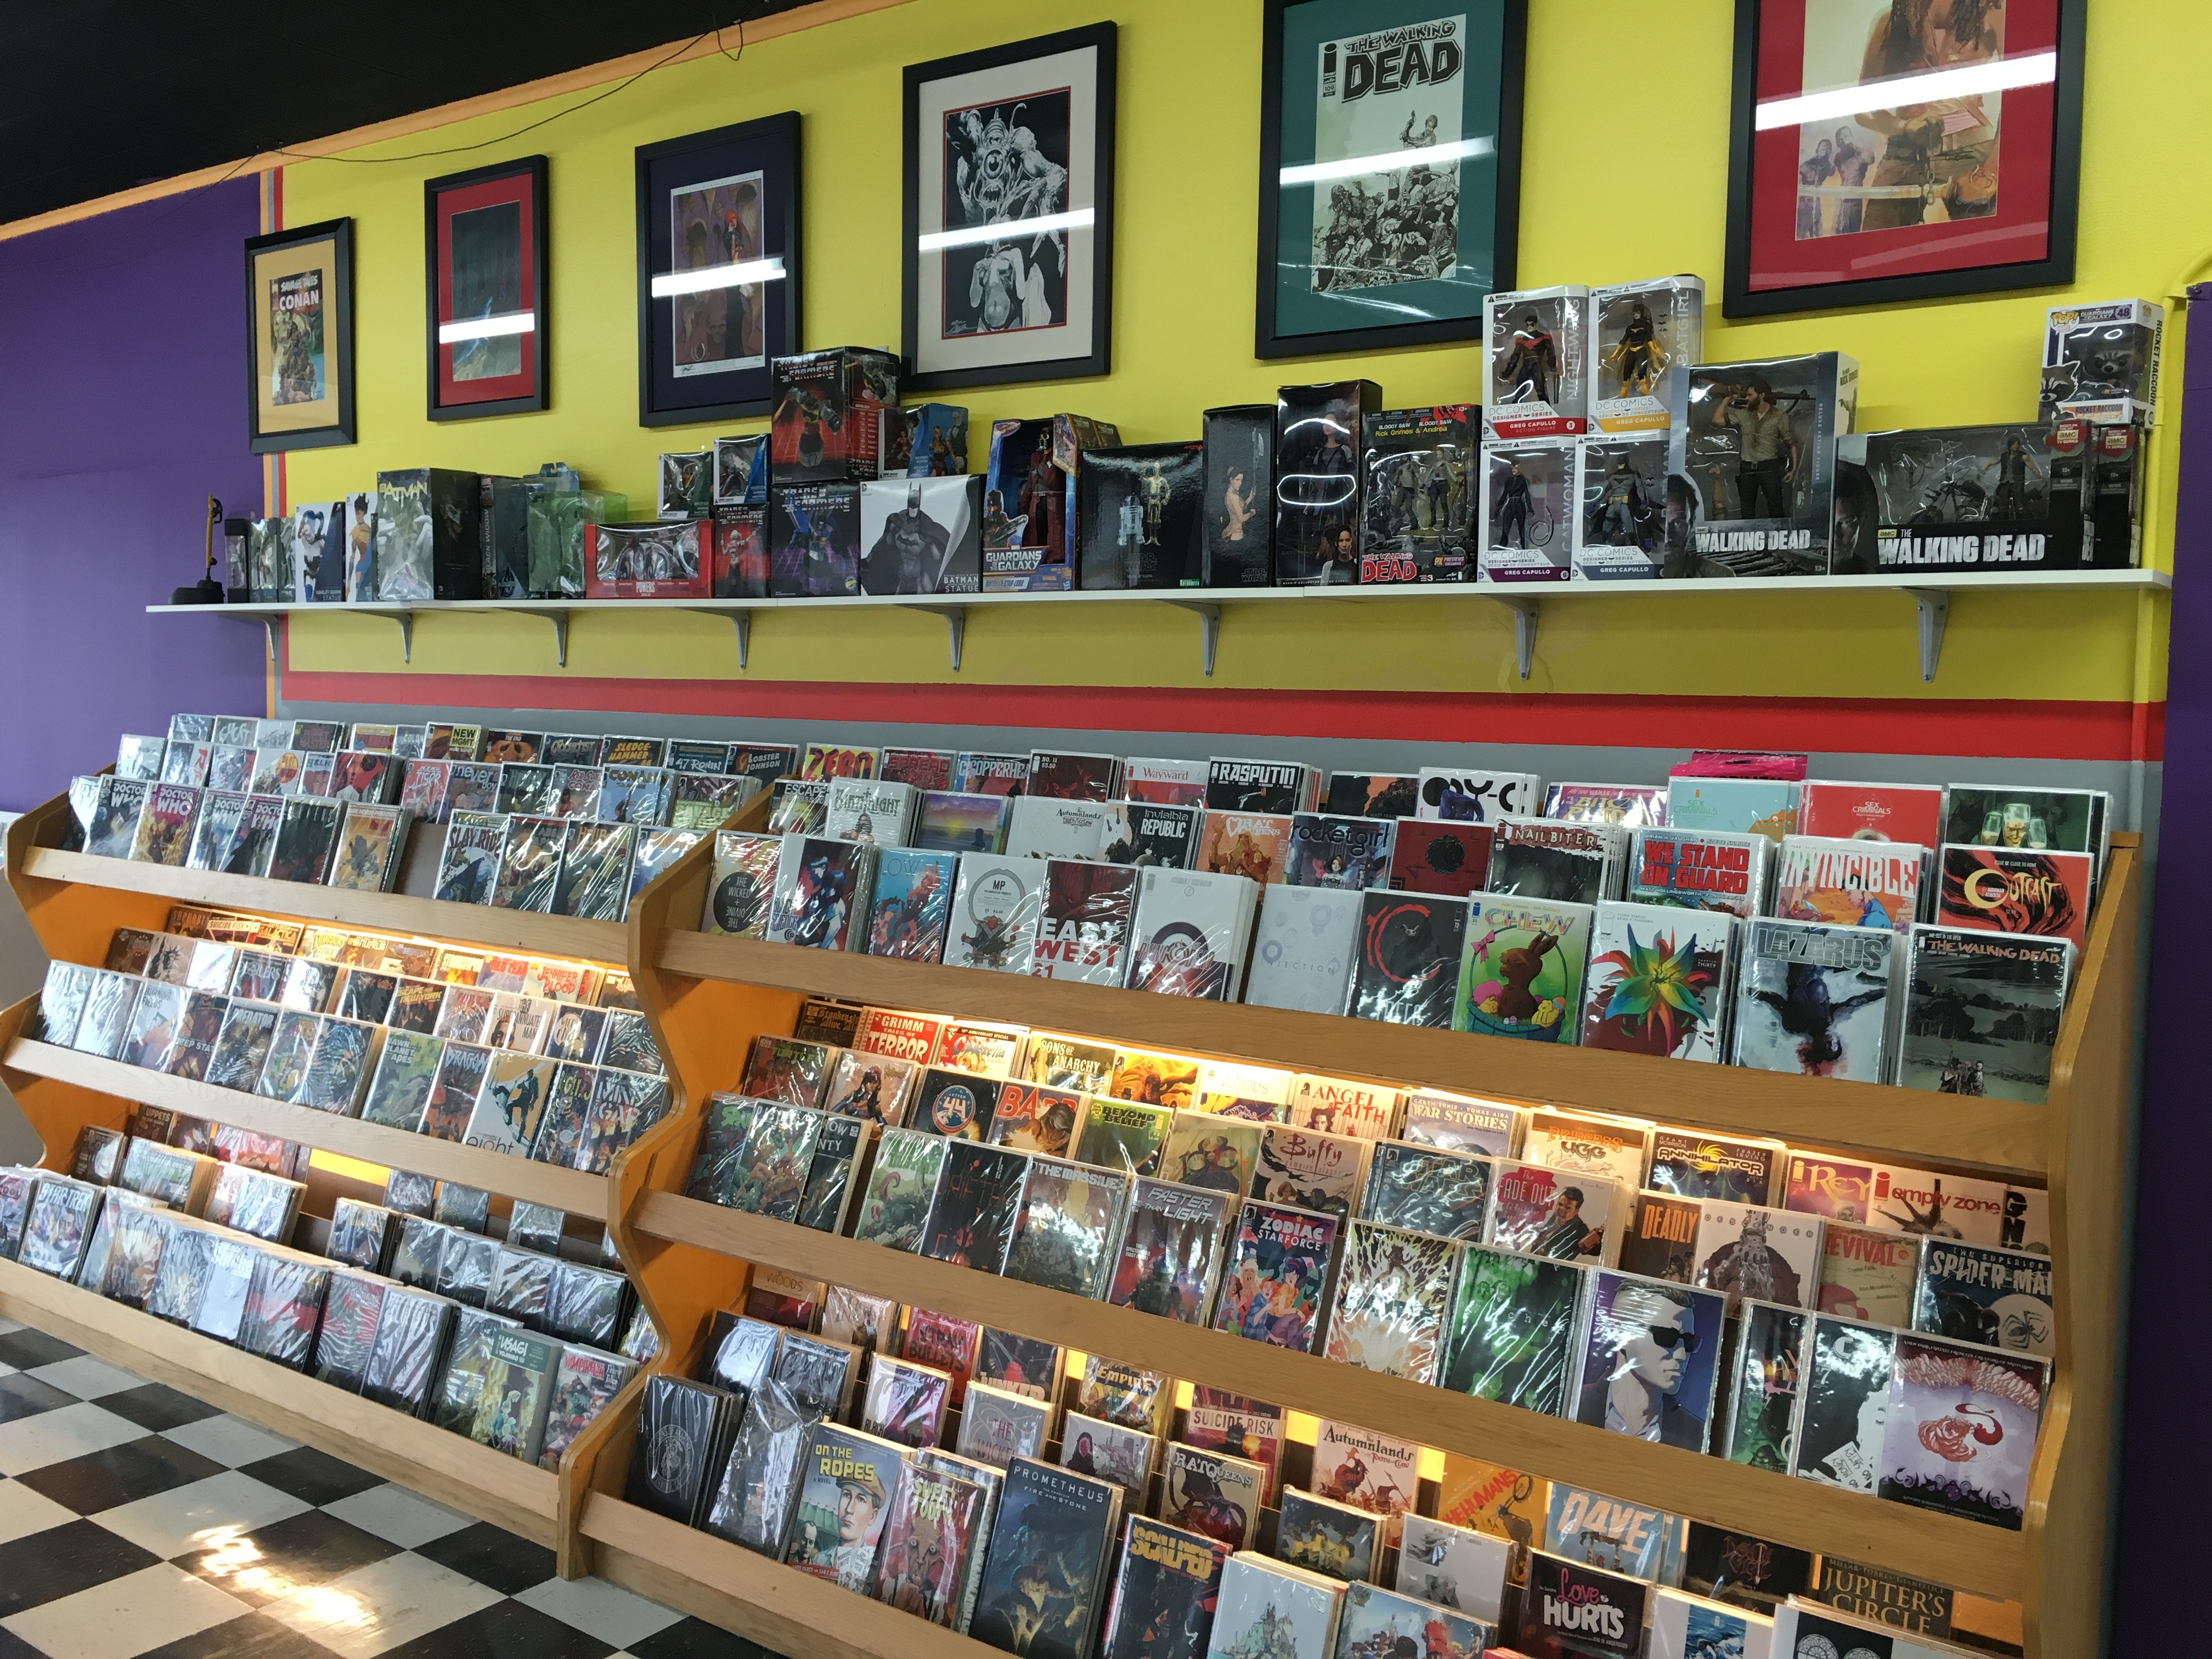 "<span  class=""uc_style_uc_tiles_grid_image_elementor_uc_items_attribute_title"" style=""color:#ffffff;"">New Comics at Mammoth Comics</span>"